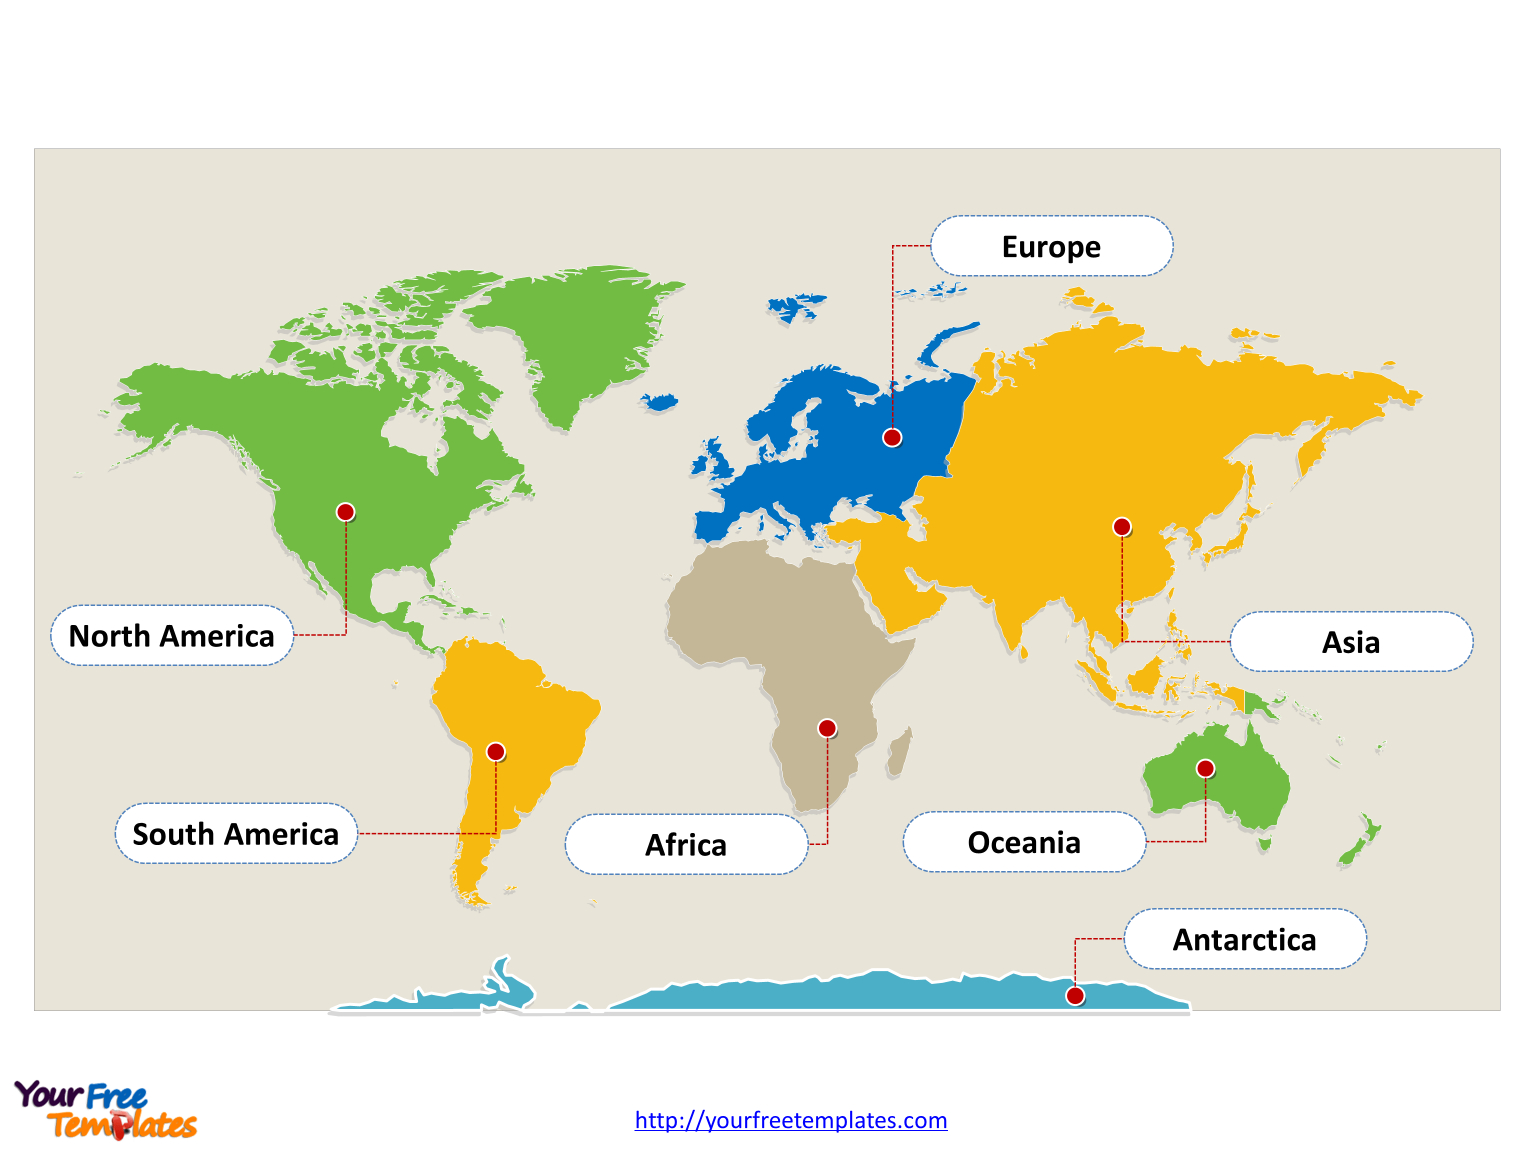 World Map With Continents - Free Powerpoint Templates - Free Printable Continent Map